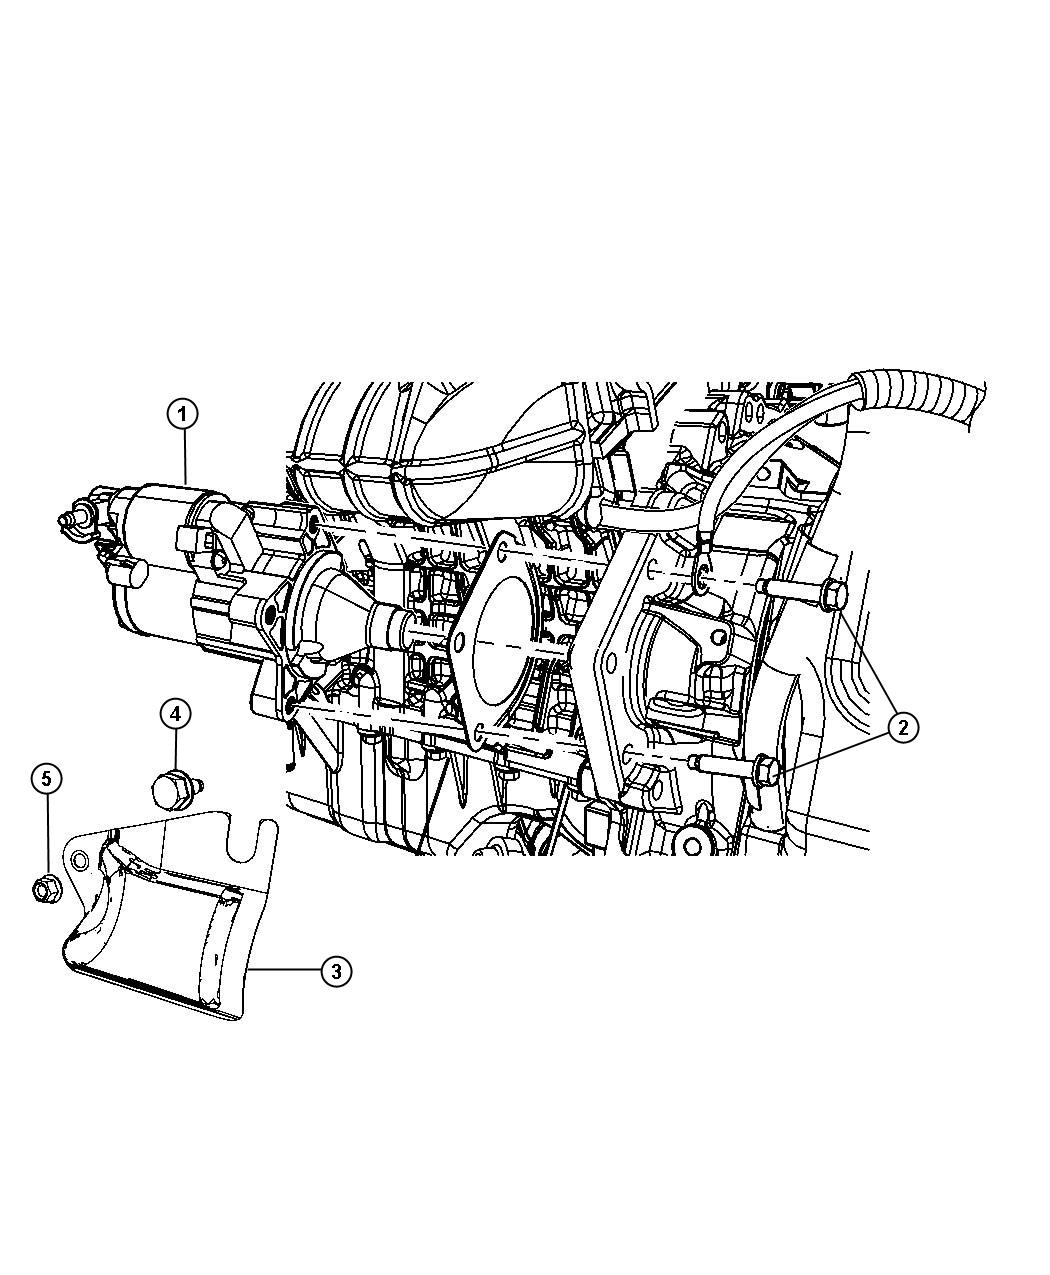 Jeep Grand Cherokee Shield Starter Related Erb Engine